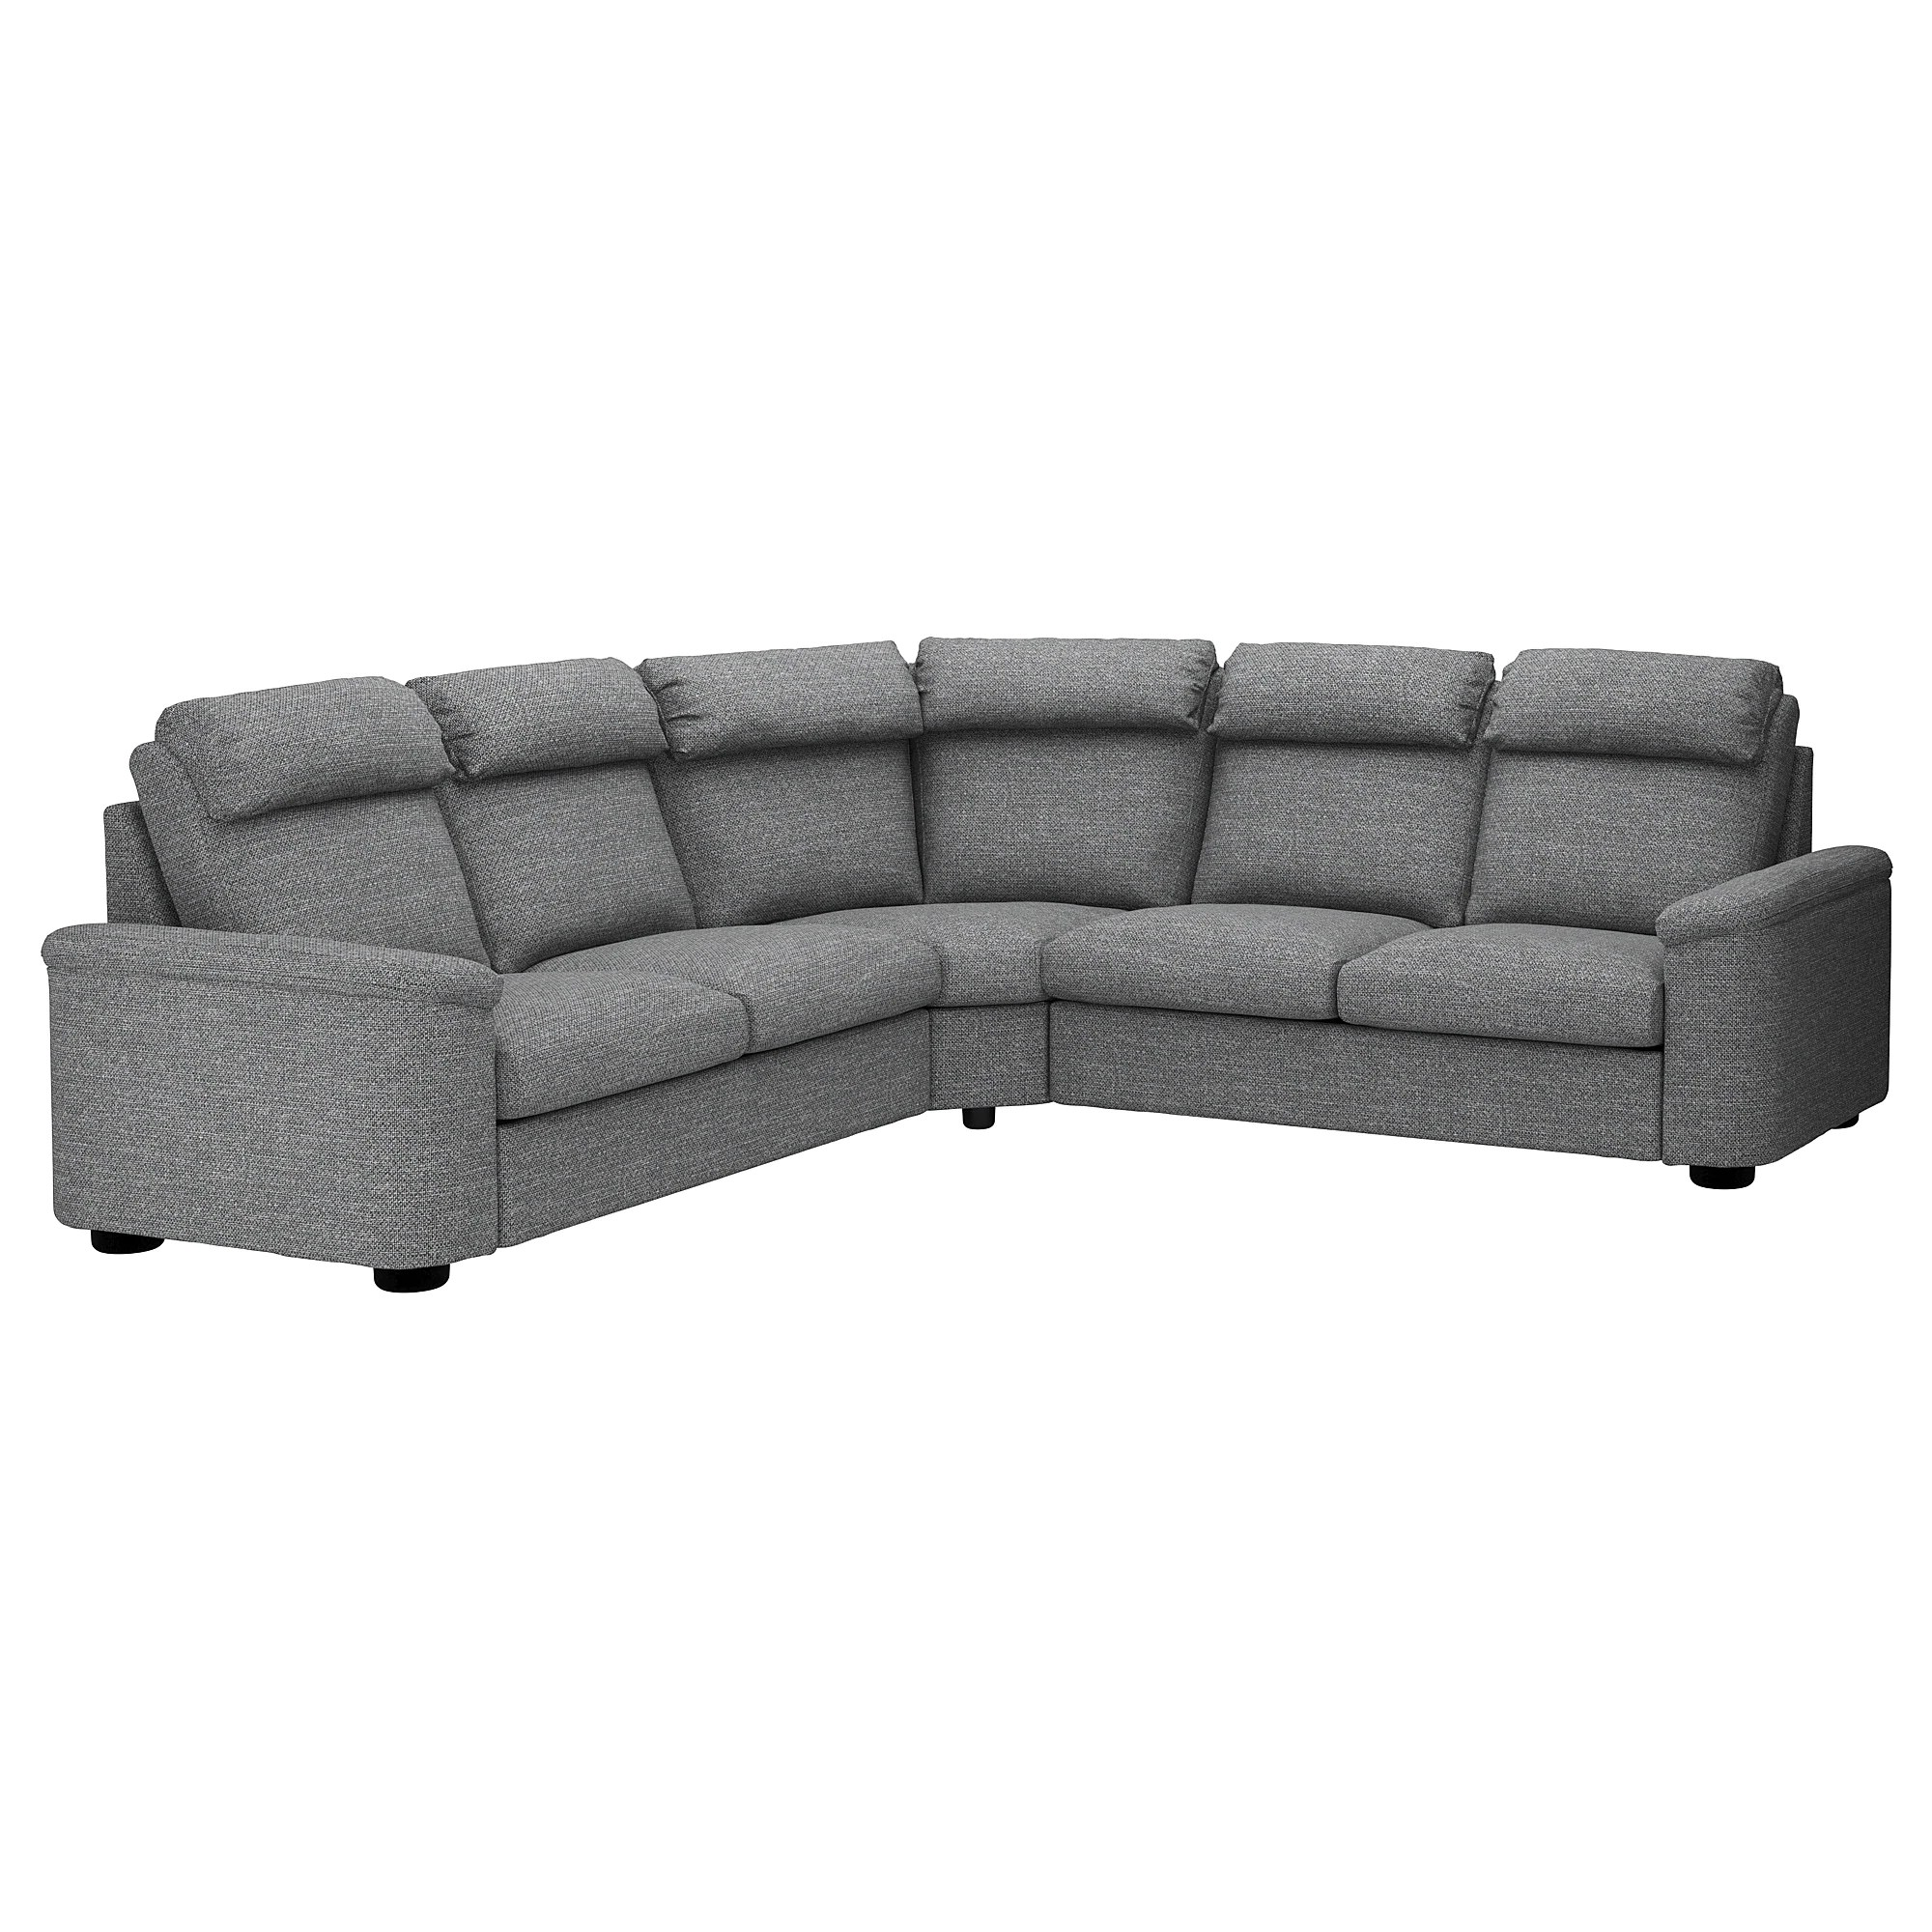 Sofa Bed For Sale Toronto Lidhult Corner Sofabed W Chaise Lejde Gray Black